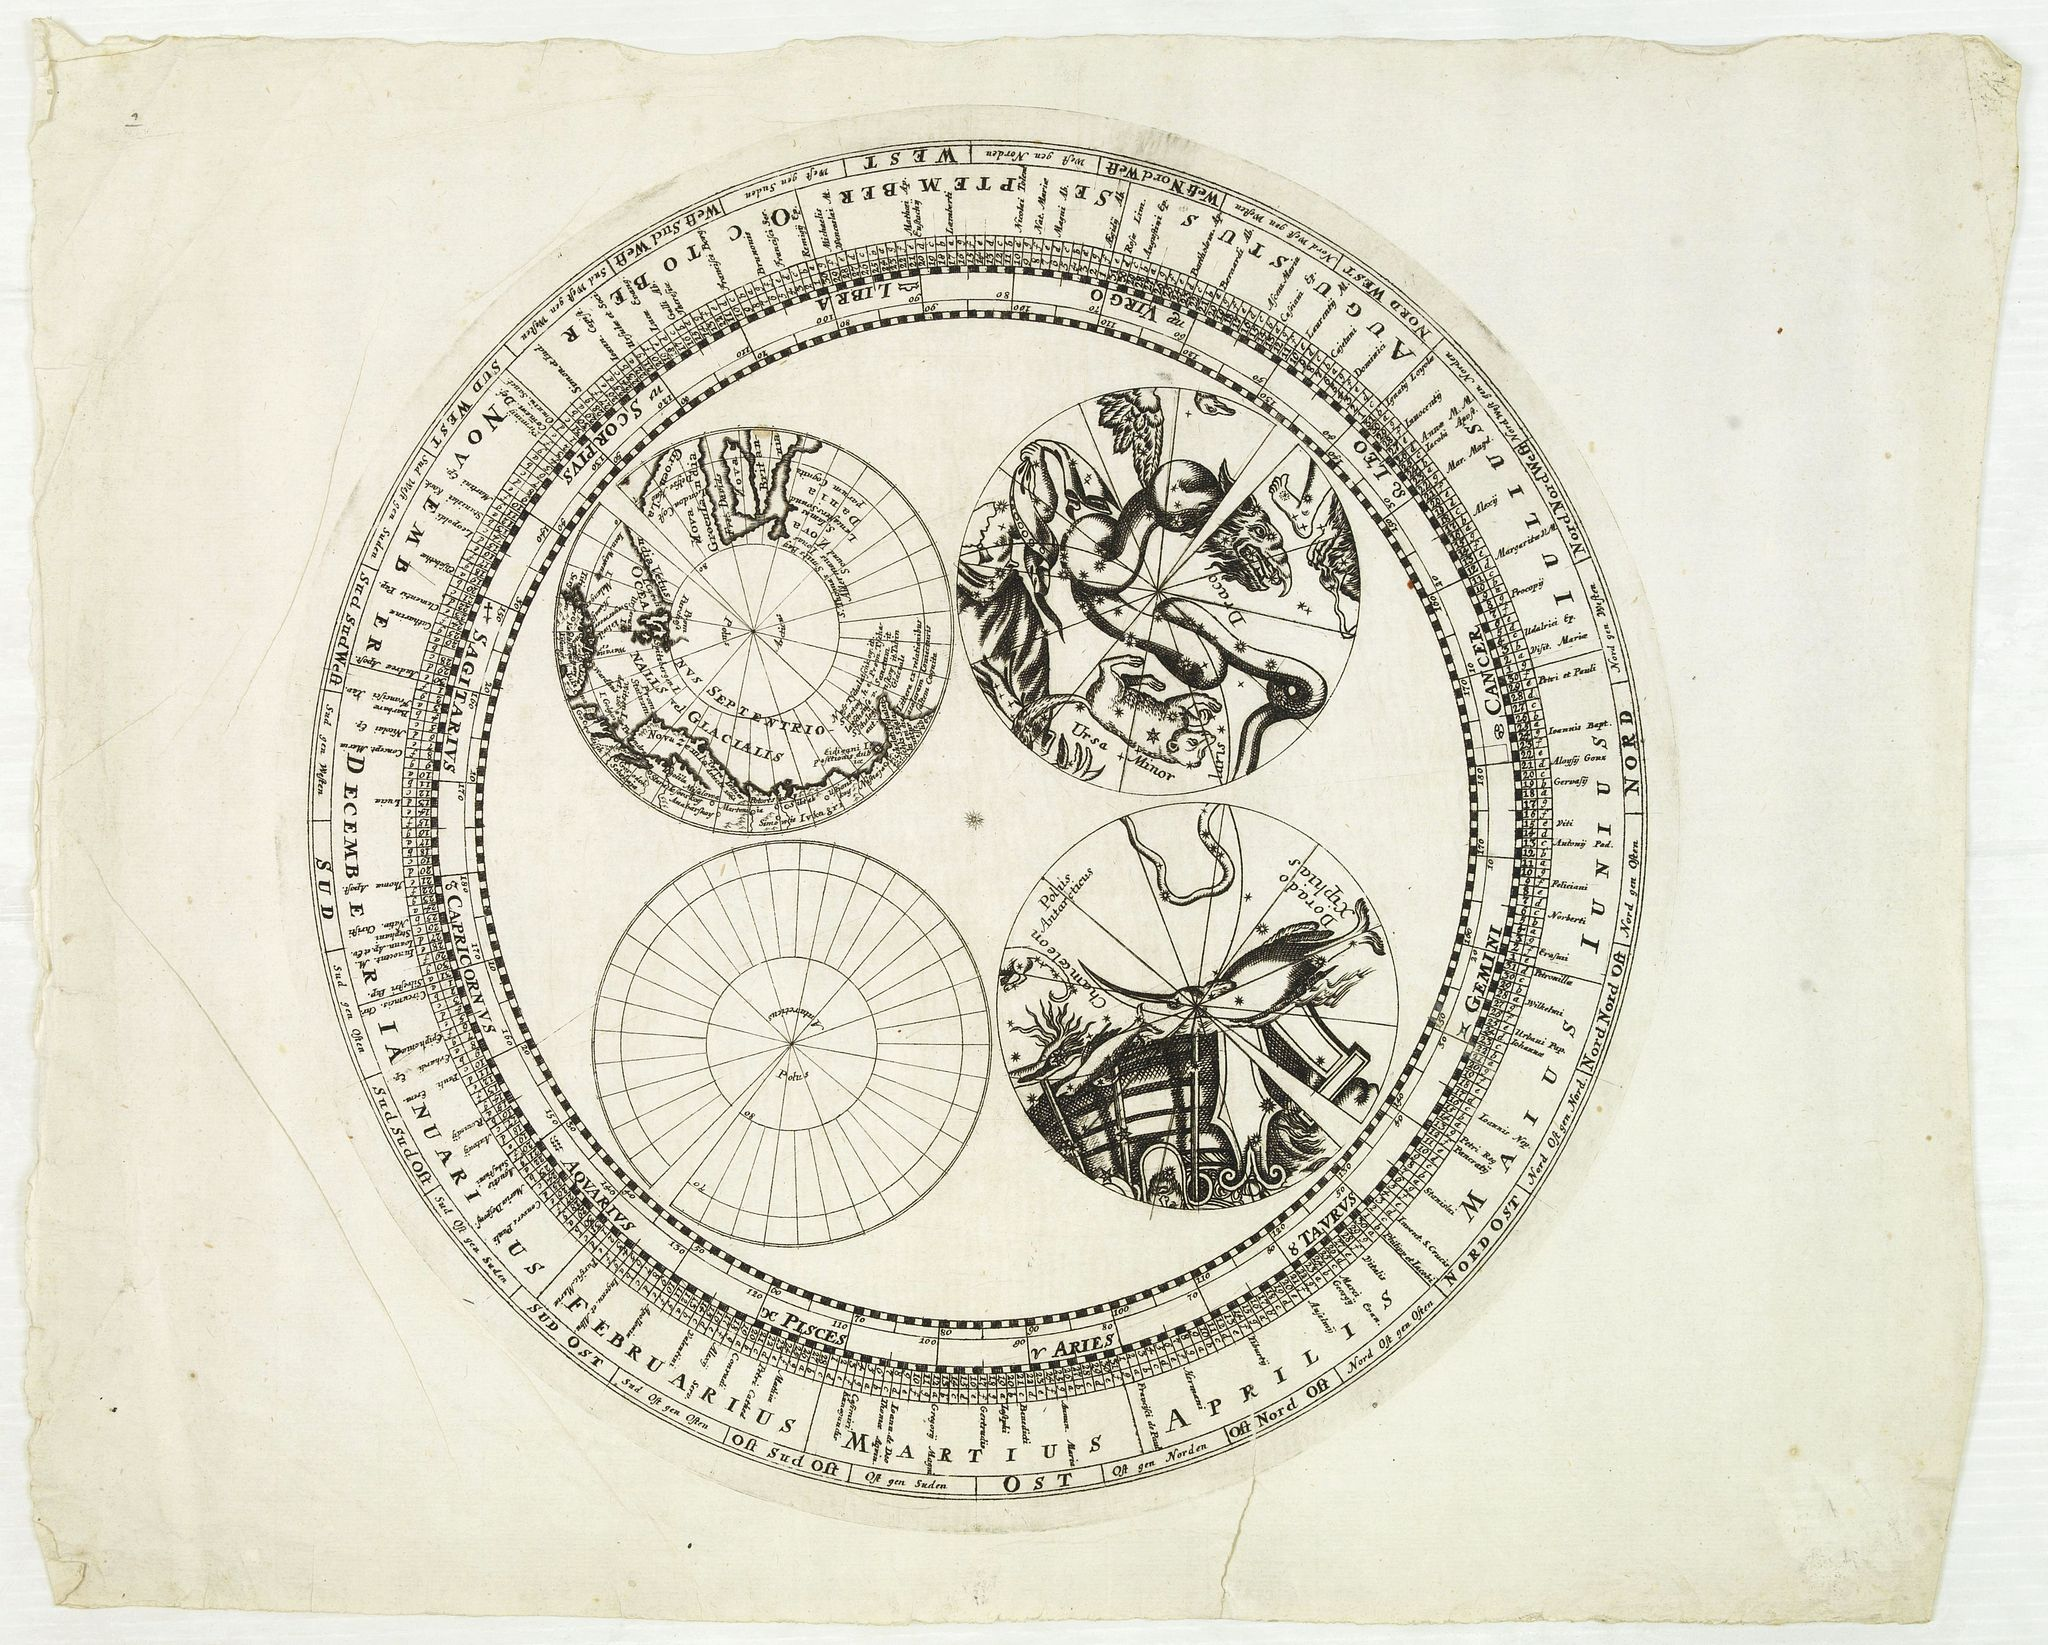 DOPPELMAYR, J.G.,  [Engraved horizon ring  for a 20cm diameter terrestial globe, together with terrestrial and celestial north and south pole calottes. ], antique map, old maps